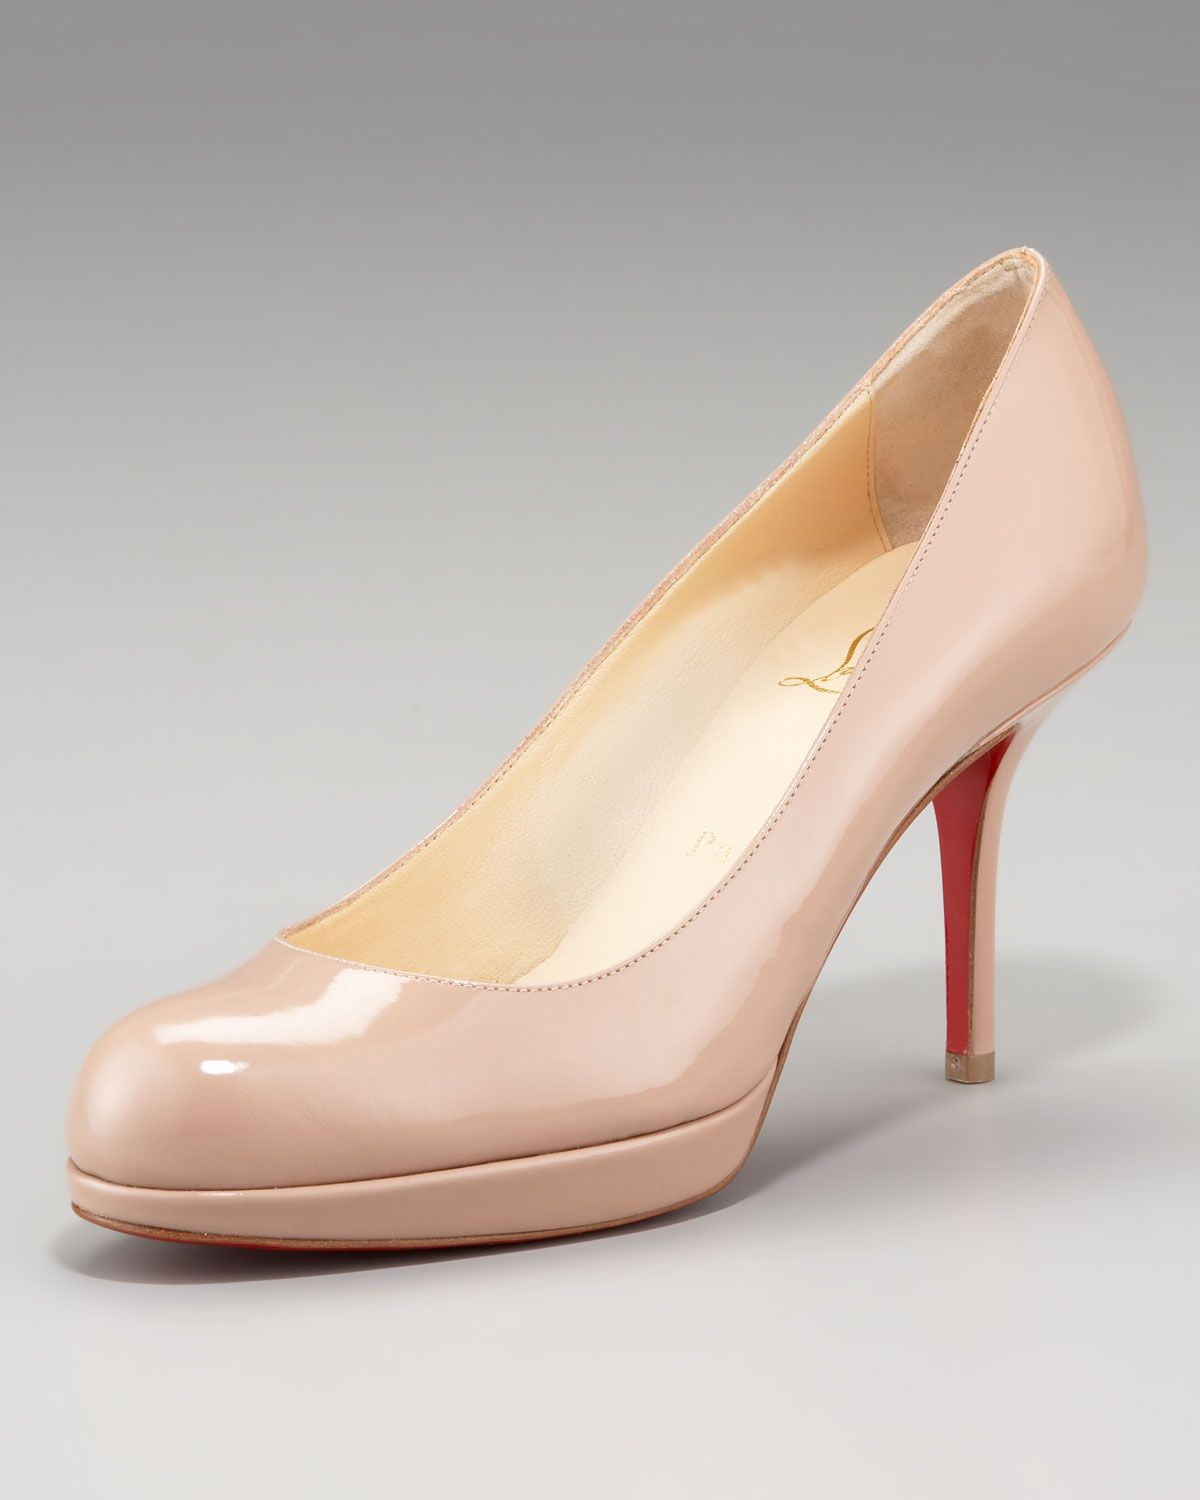 1000  images about Shoes on Pinterest | Flat shoes, Pistols and ...